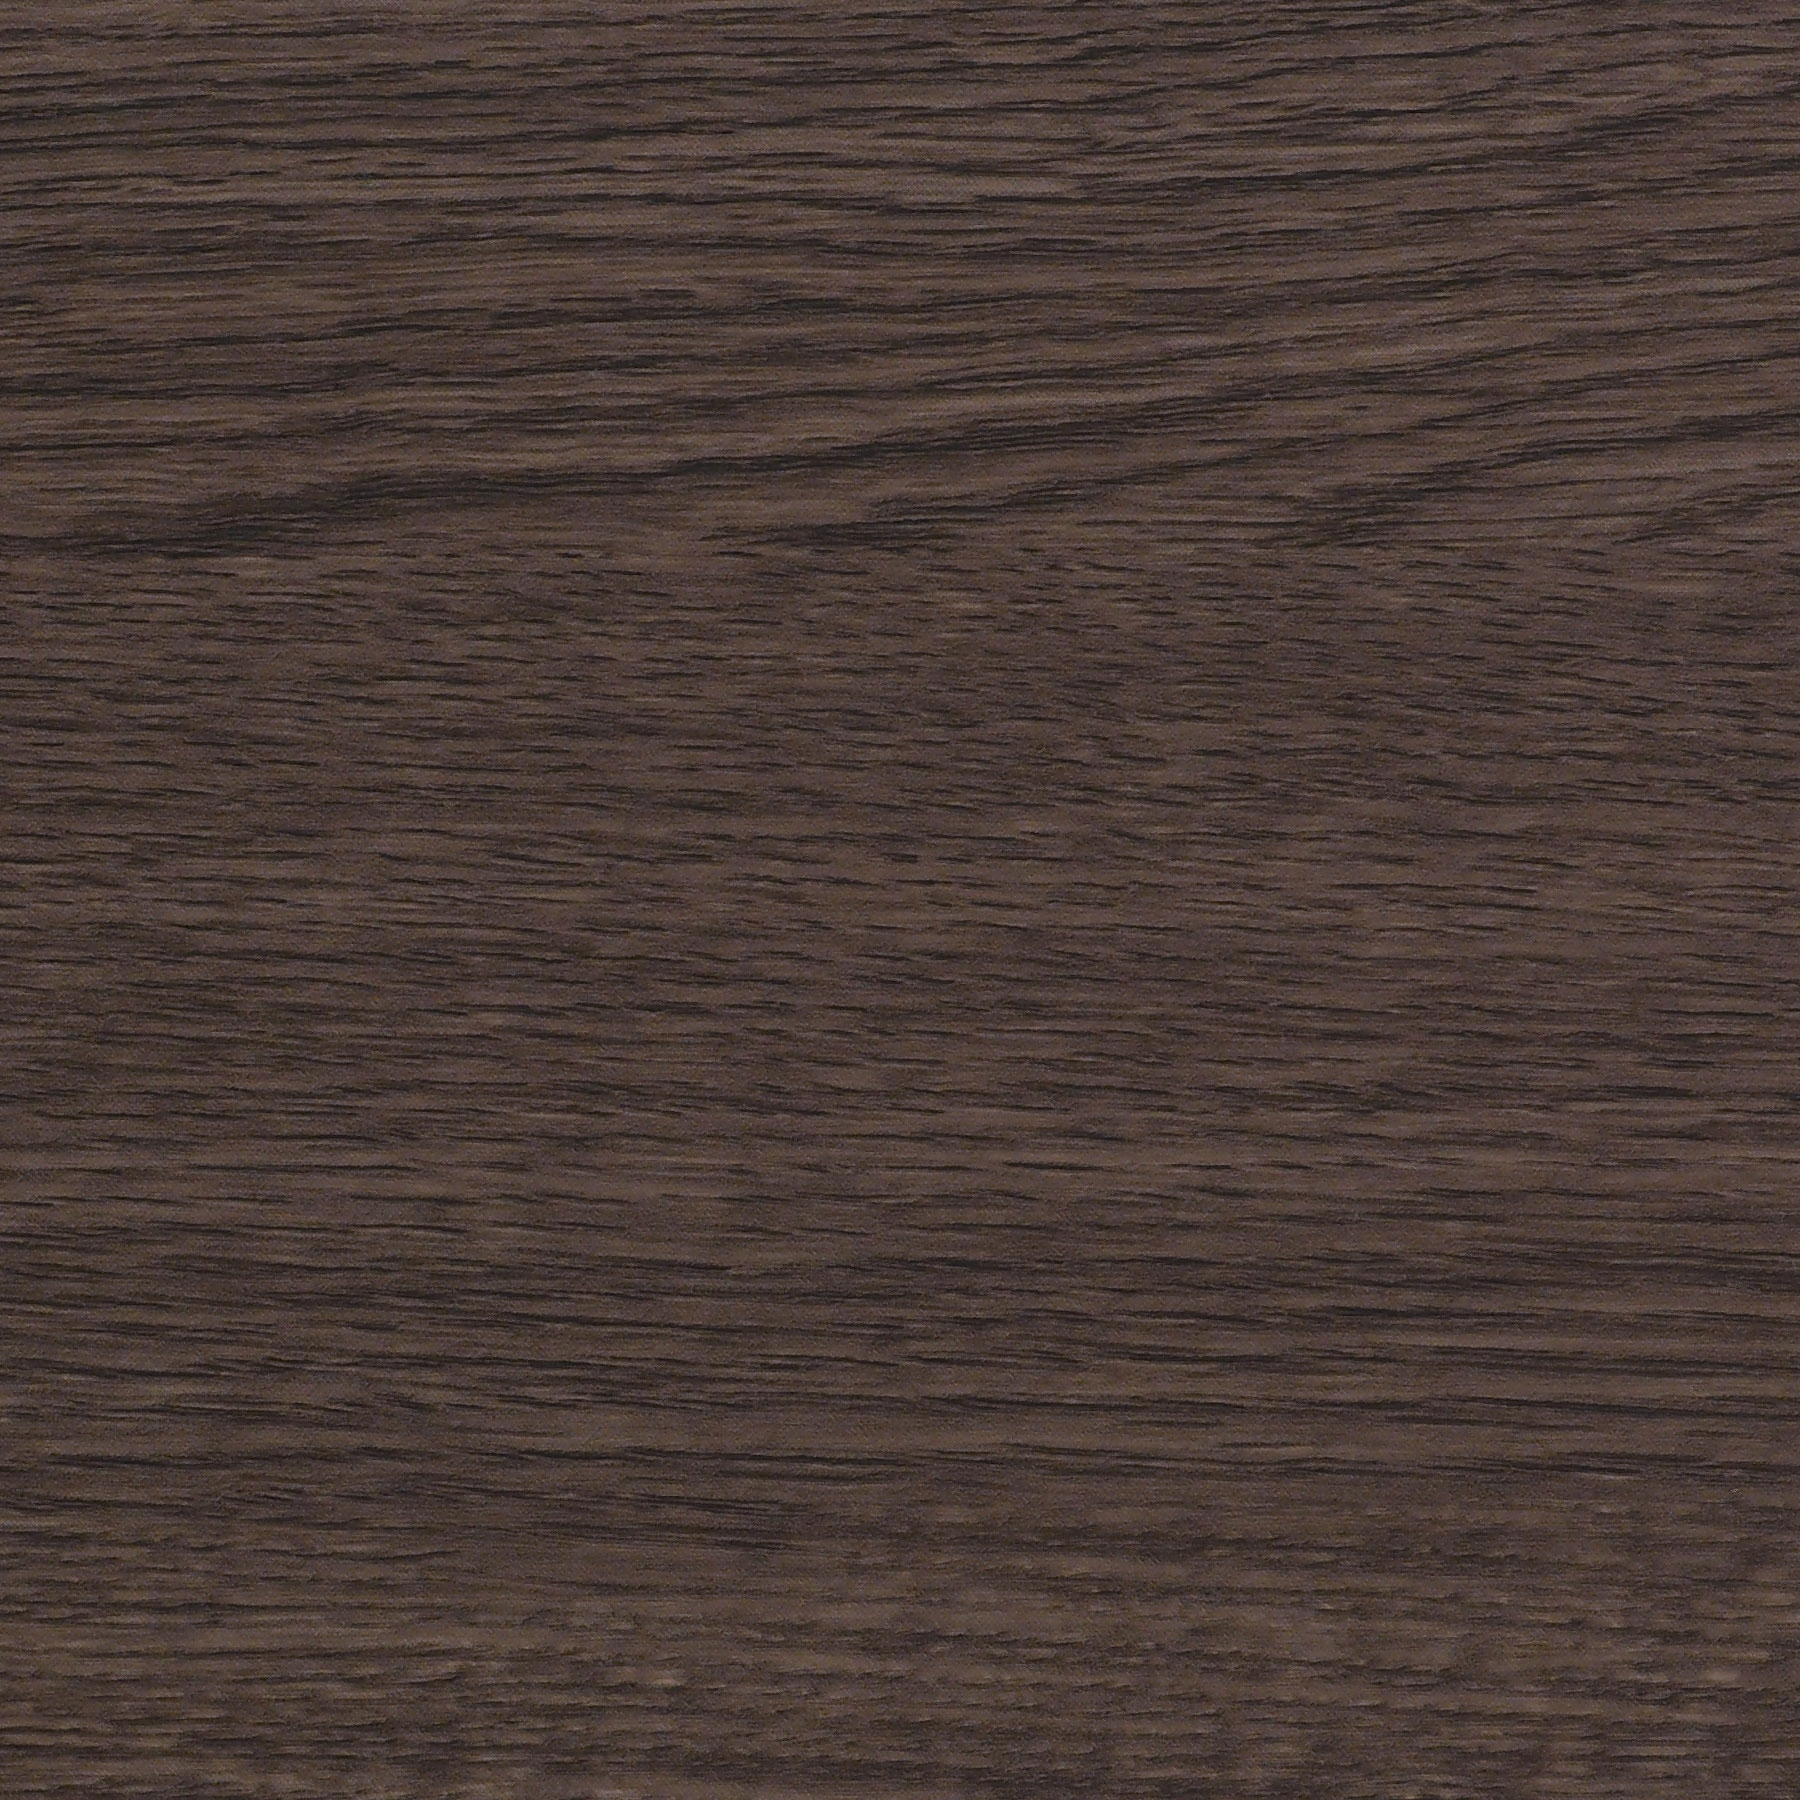 Obsidian Oak High Resolution Swatch